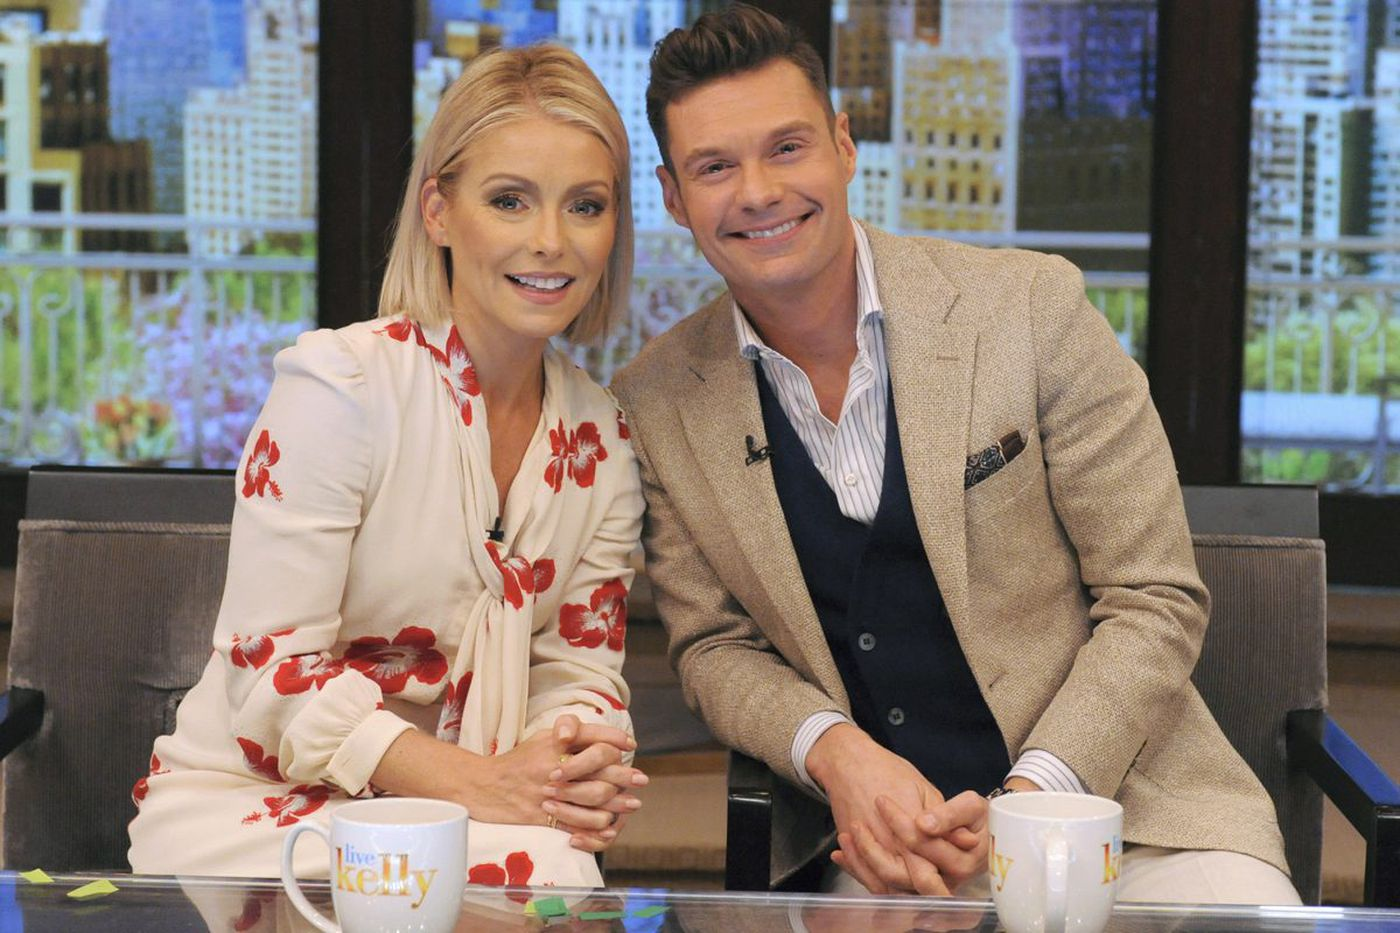 Ryan Seacrest to host 'Idol' reboot for ABC